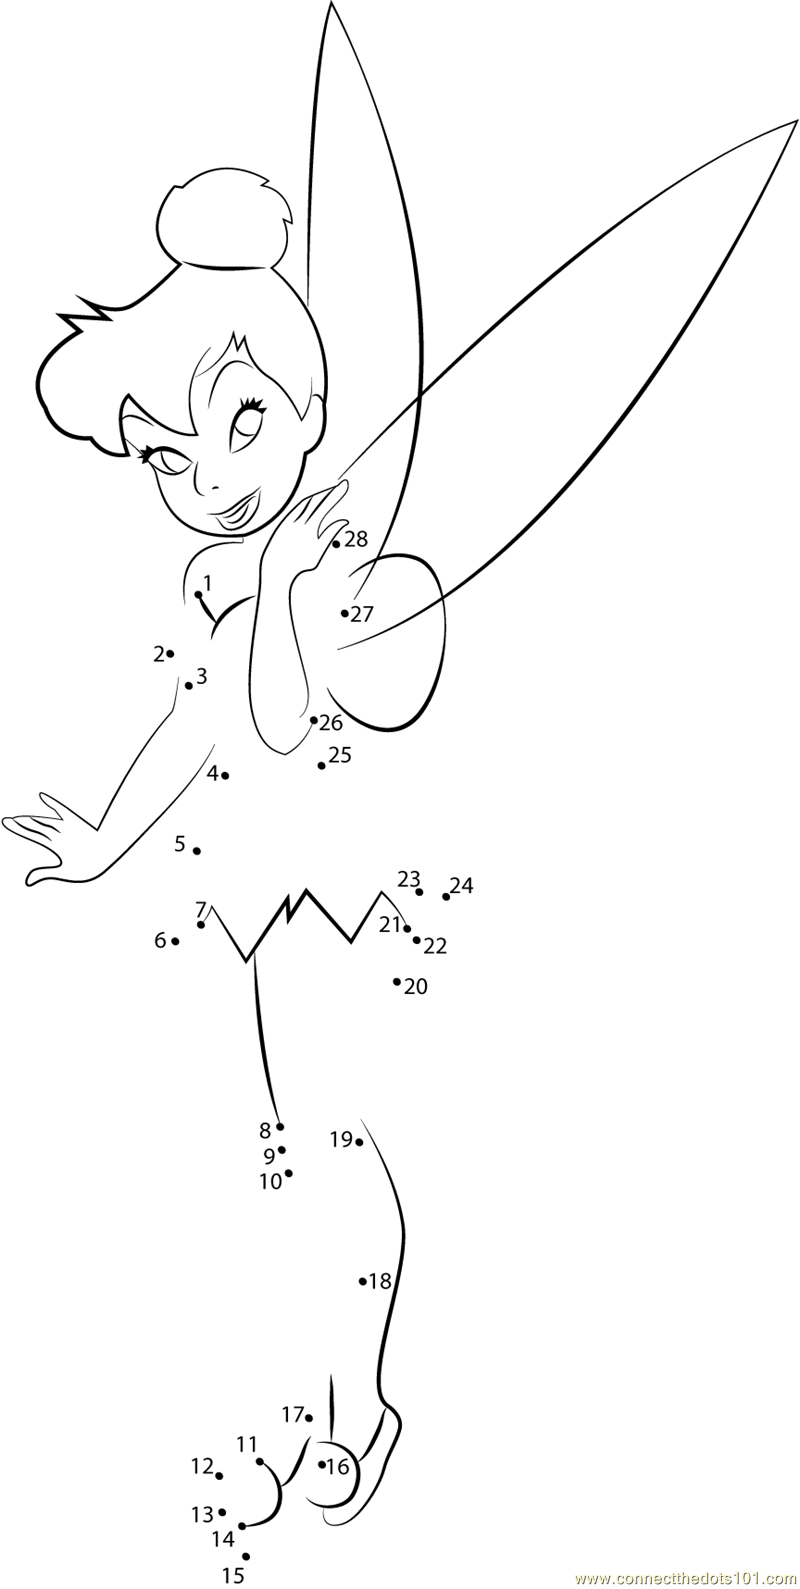 Workbooks superhero worksheets for preschool : Cute Tinkerbell dot to dot printable worksheet - Connect The Dots ...